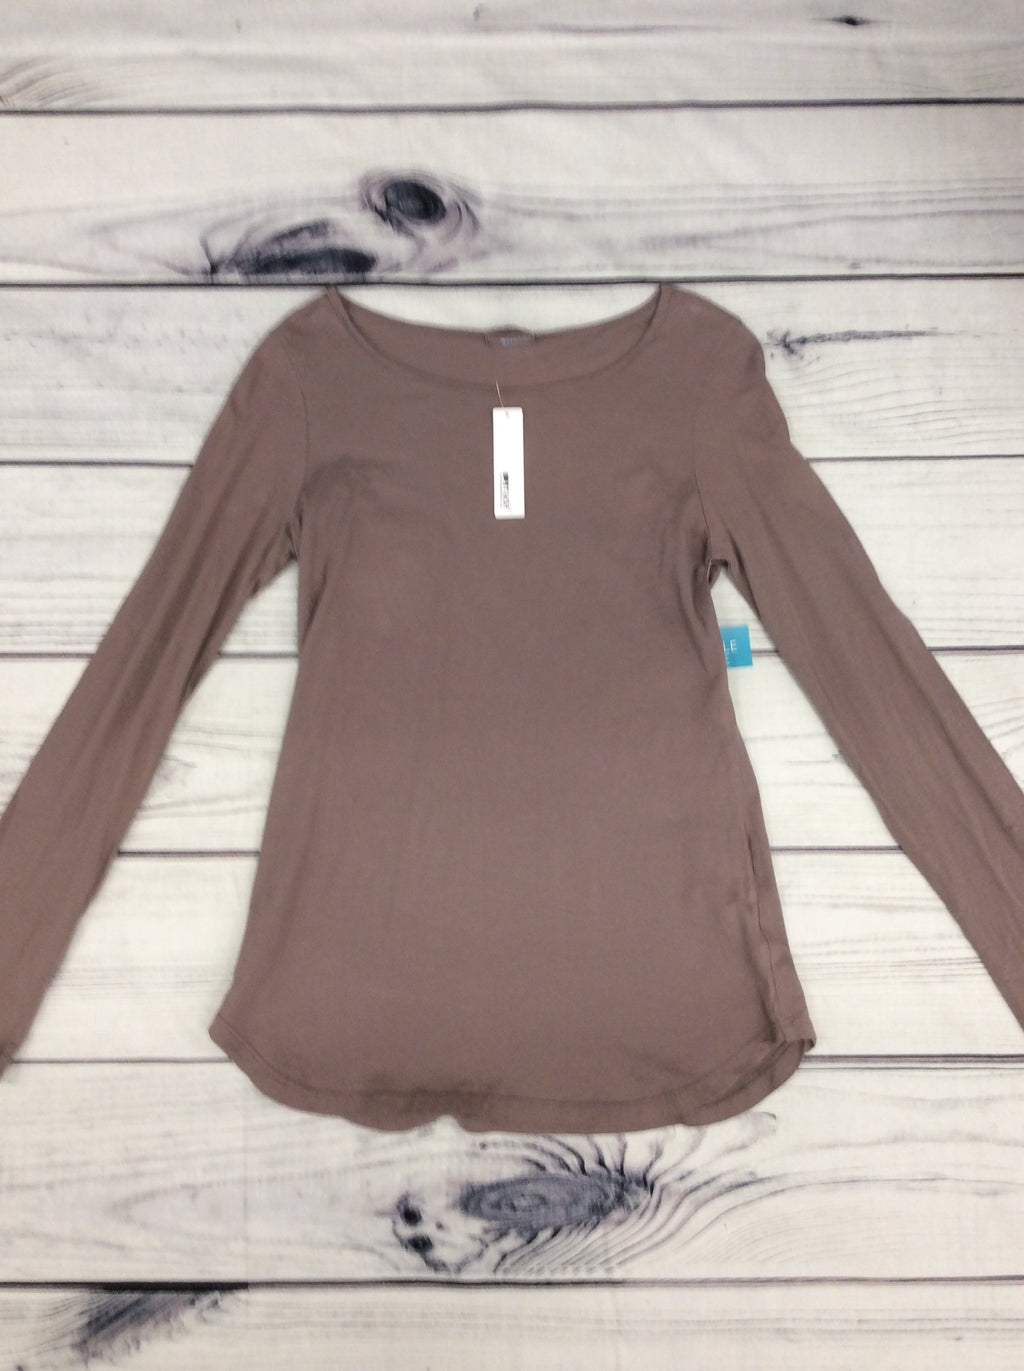 NWT L.A. Made Long Sleeve Top